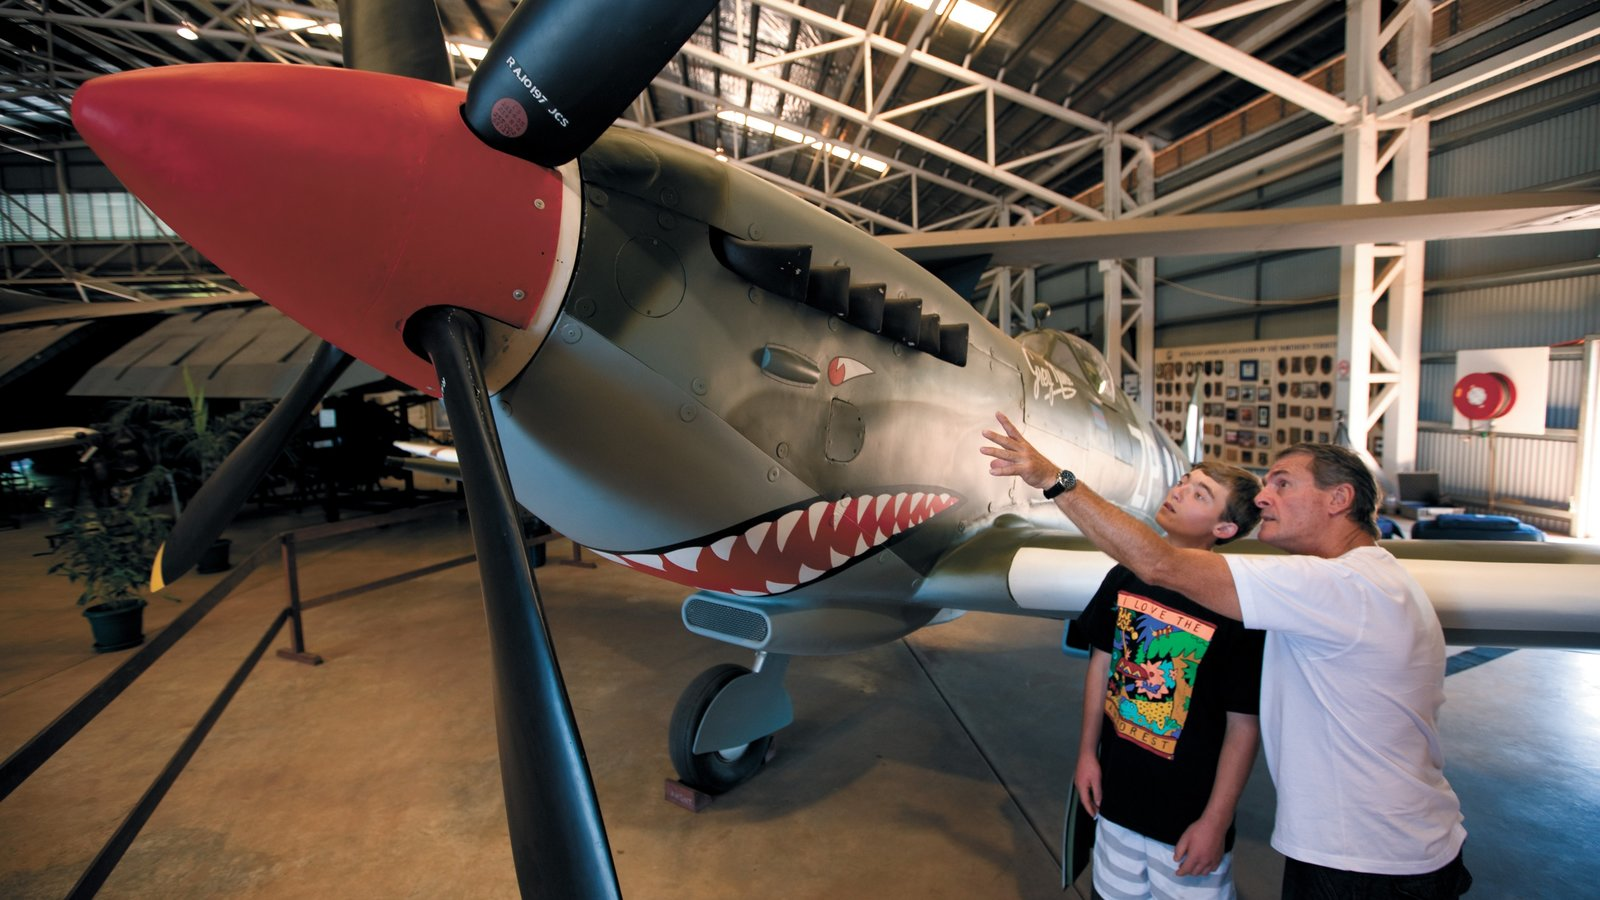 Australian Aviation Heritage Centre which includes interior views and aircraft as well as a family